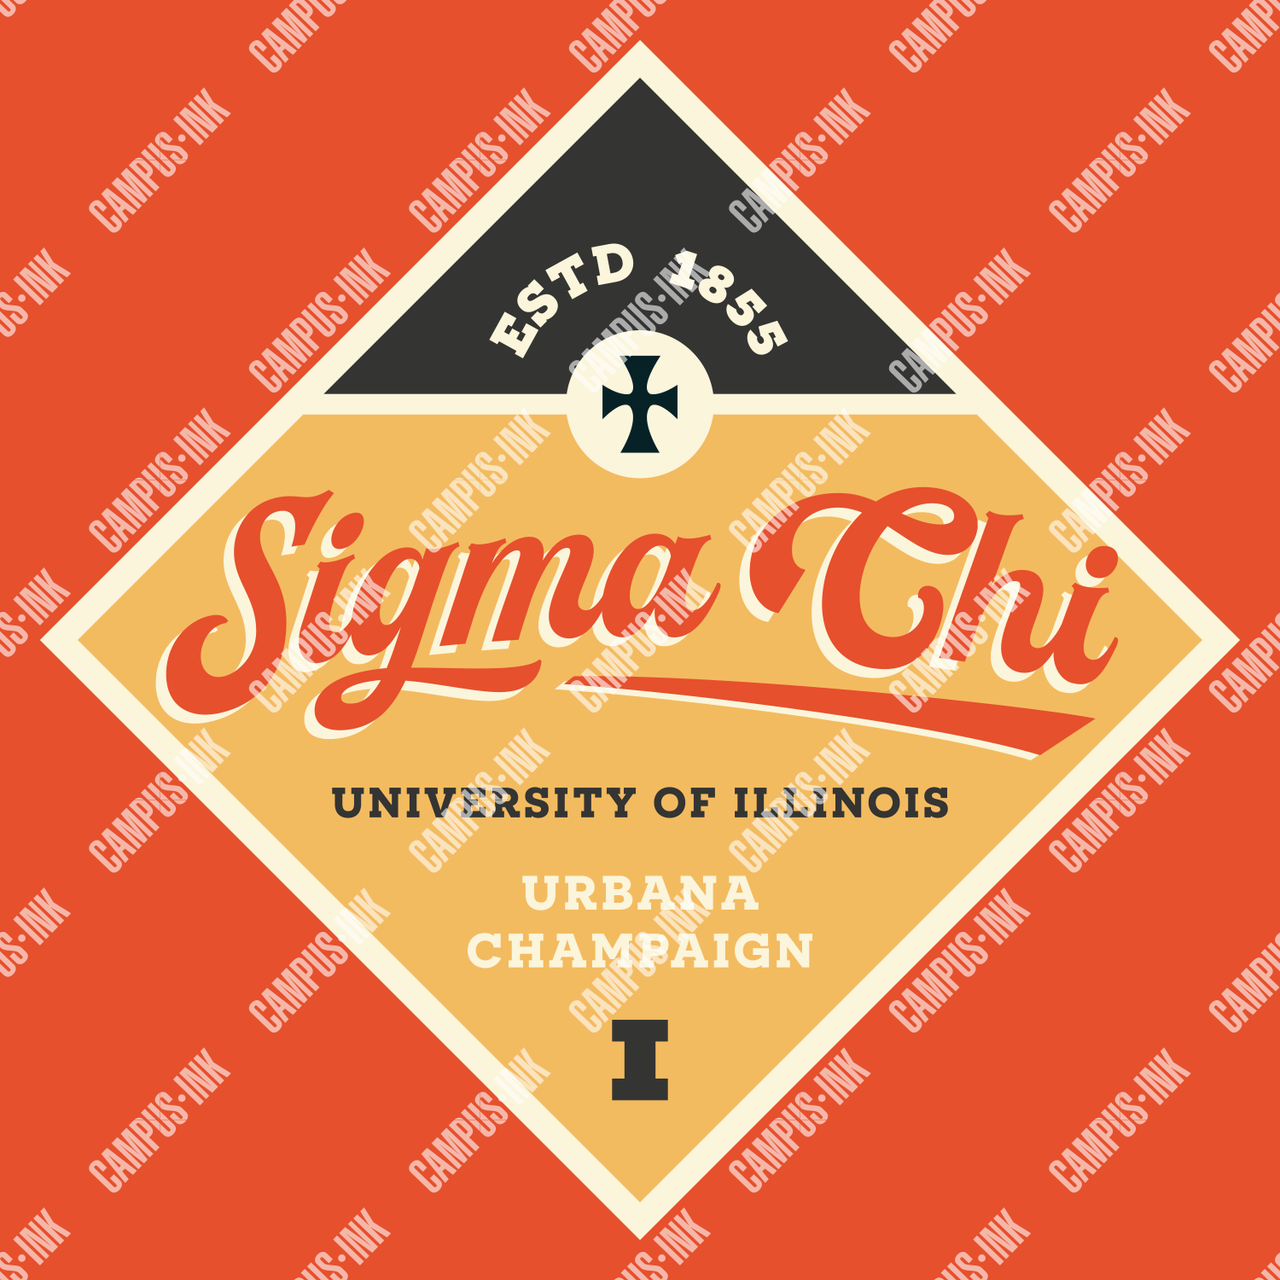 Sigma Chi One Diamond Print Design - Sigma Chi Fraternity